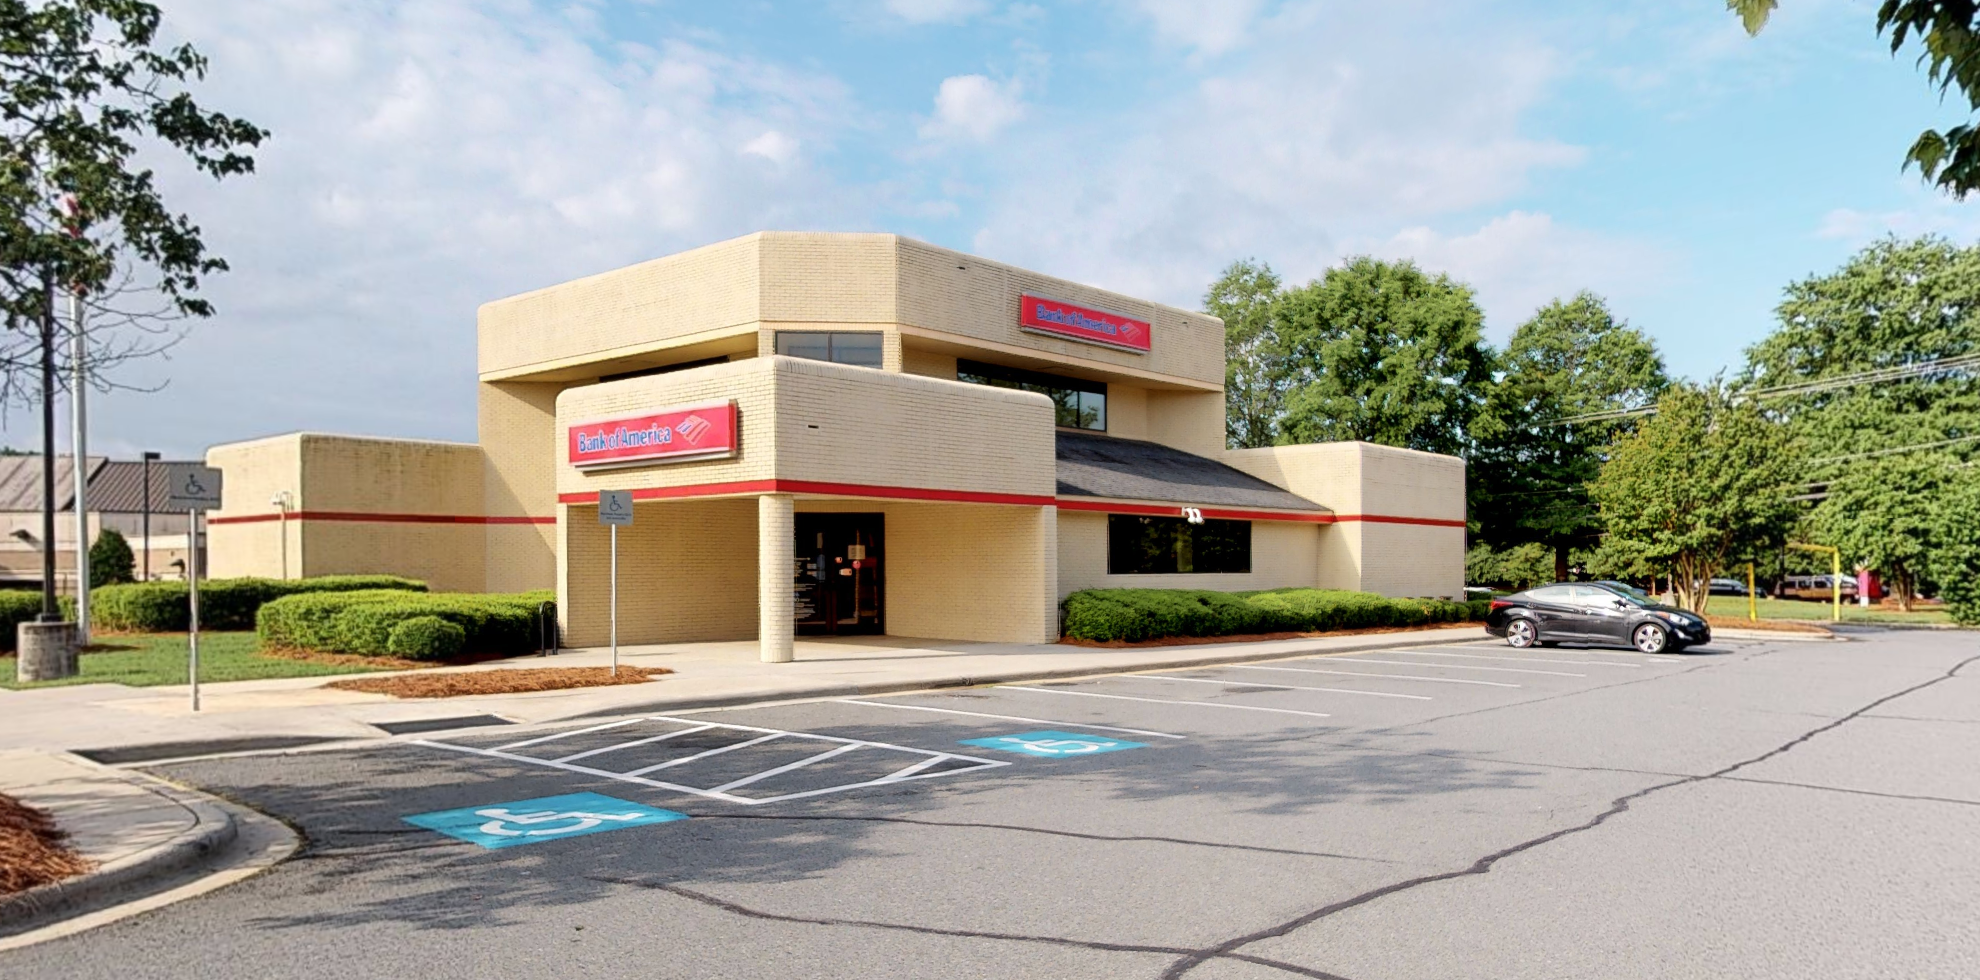 Bank of America financial center with drive-thru ATM and teller   7911 Providence Rd, Charlotte, NC 28277